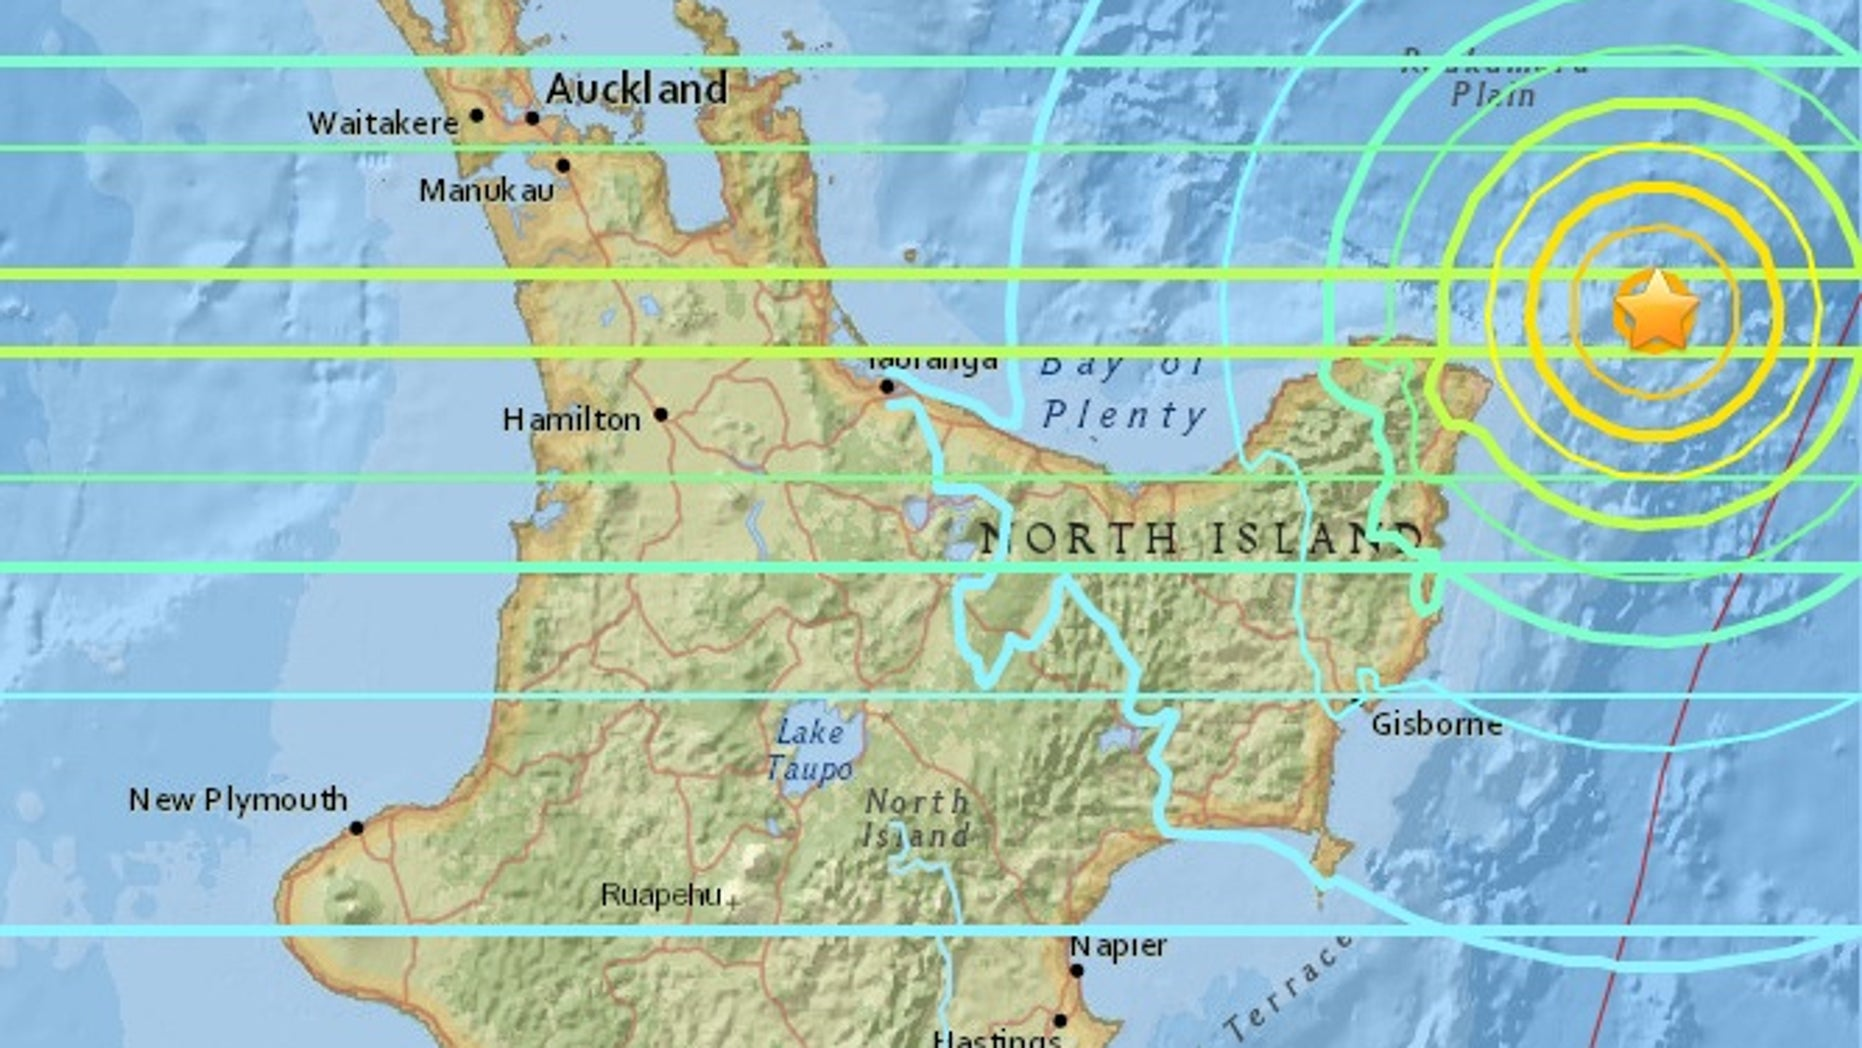 Map of the earthquake. The yellow rings signify strong shaking, with blue rings indicating weak shaking.